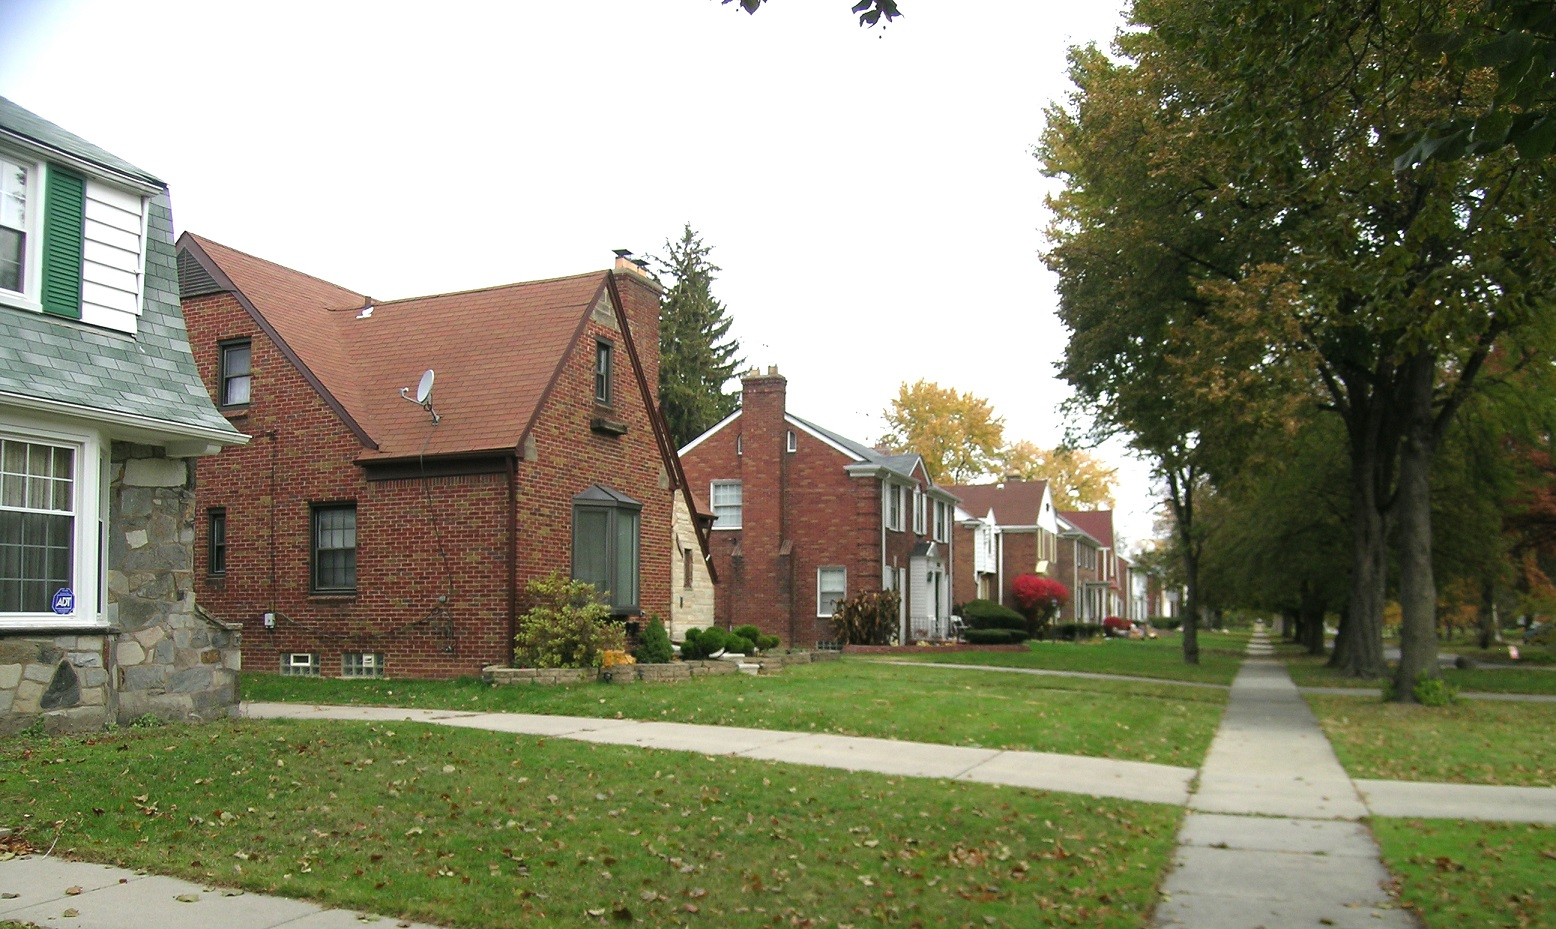 Best Areas to Live in Detroit: 5 Up-and-Coming Neighborhoods to Buy into while Prices are Still Low